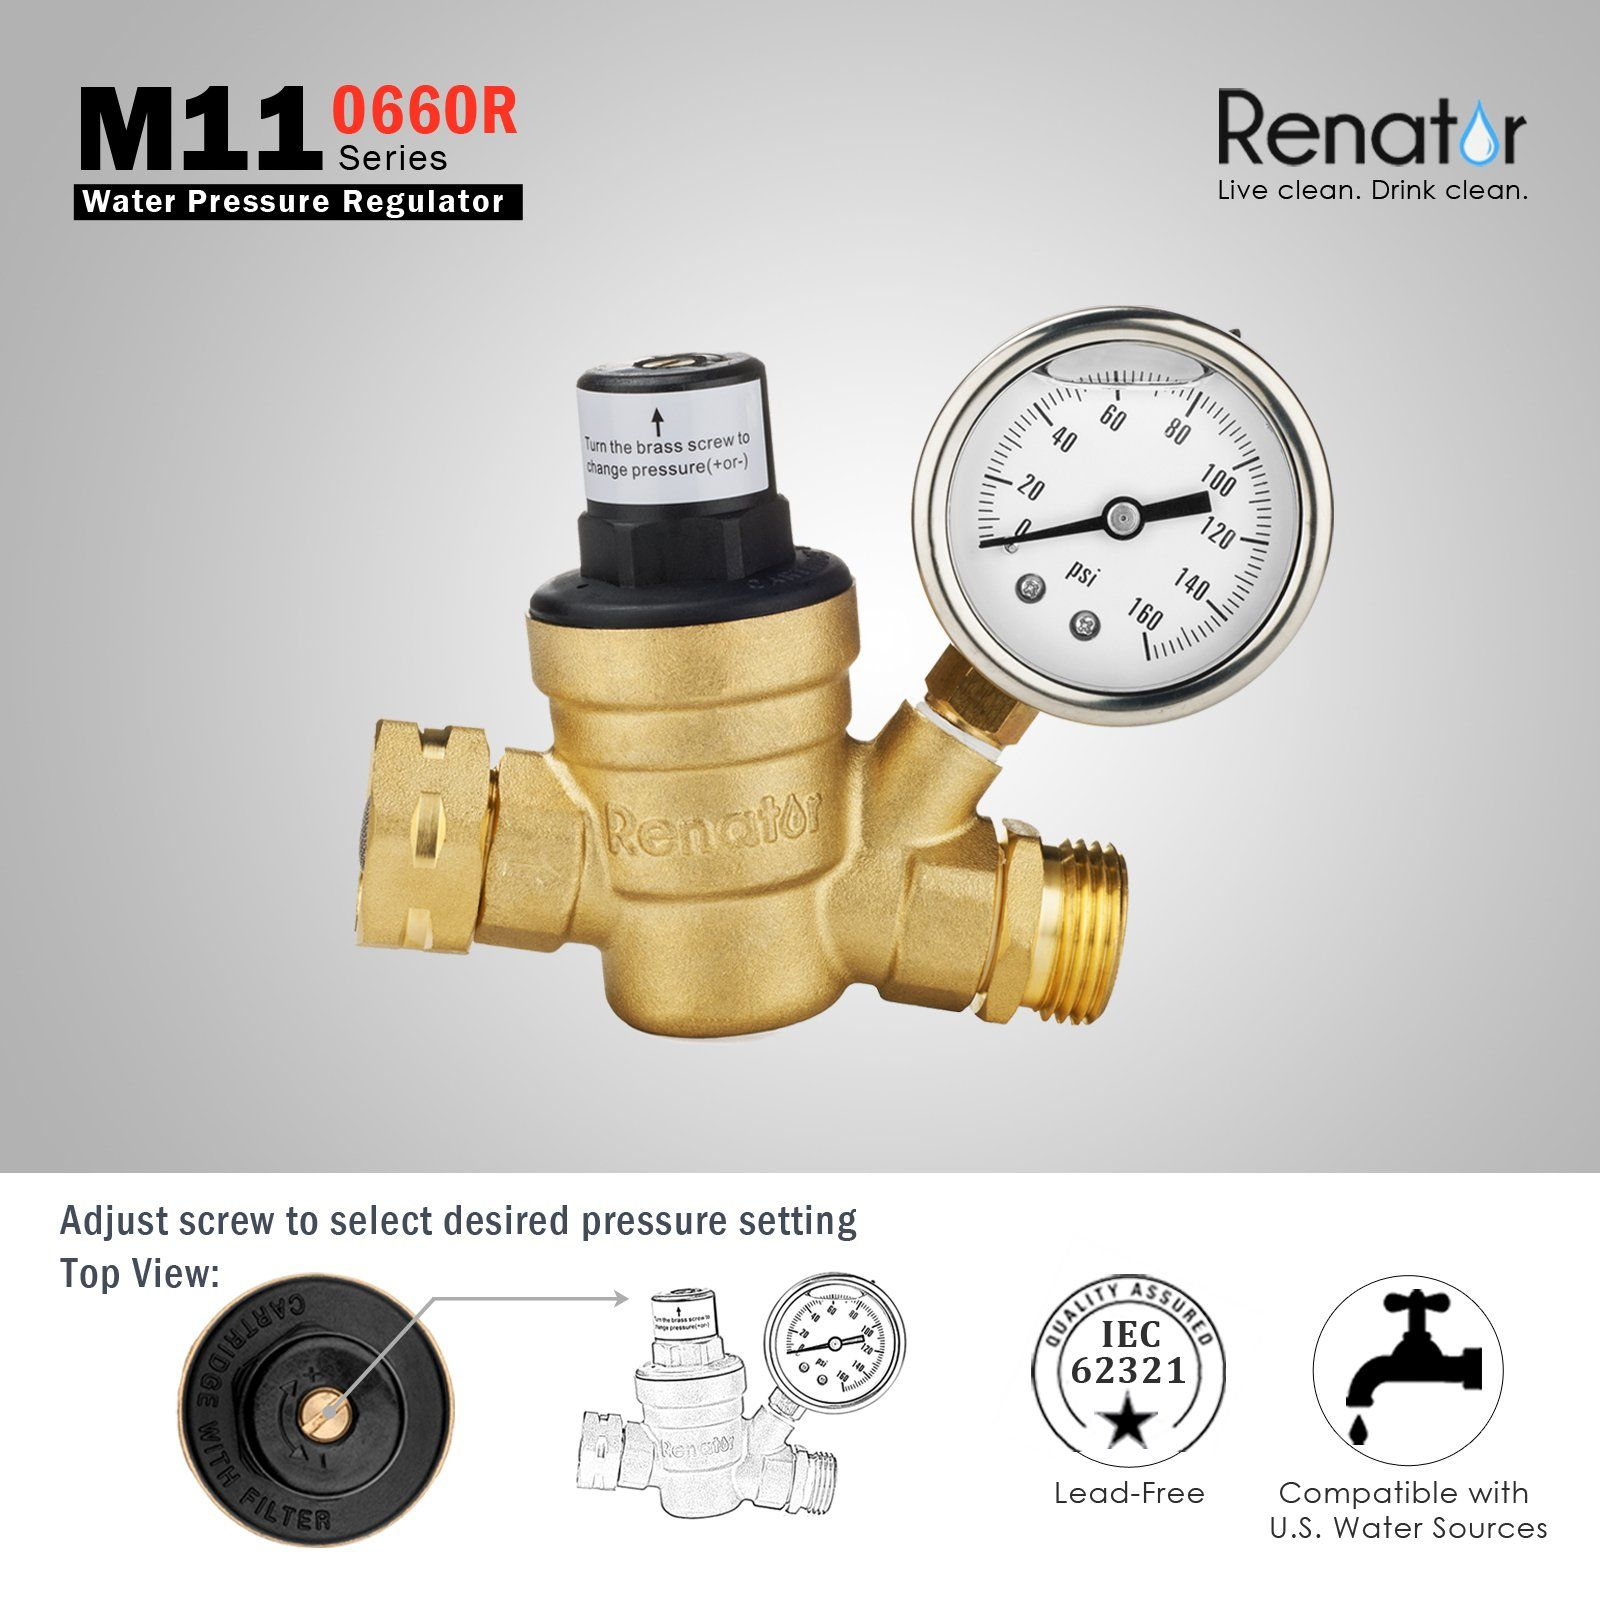 Renator M110660r Water Pressure Regulator Valve Brass Leadfree Adjustable Water Pressure Reducer With Gauge For Rv Camper And Rv Campers Lead Free Regulators